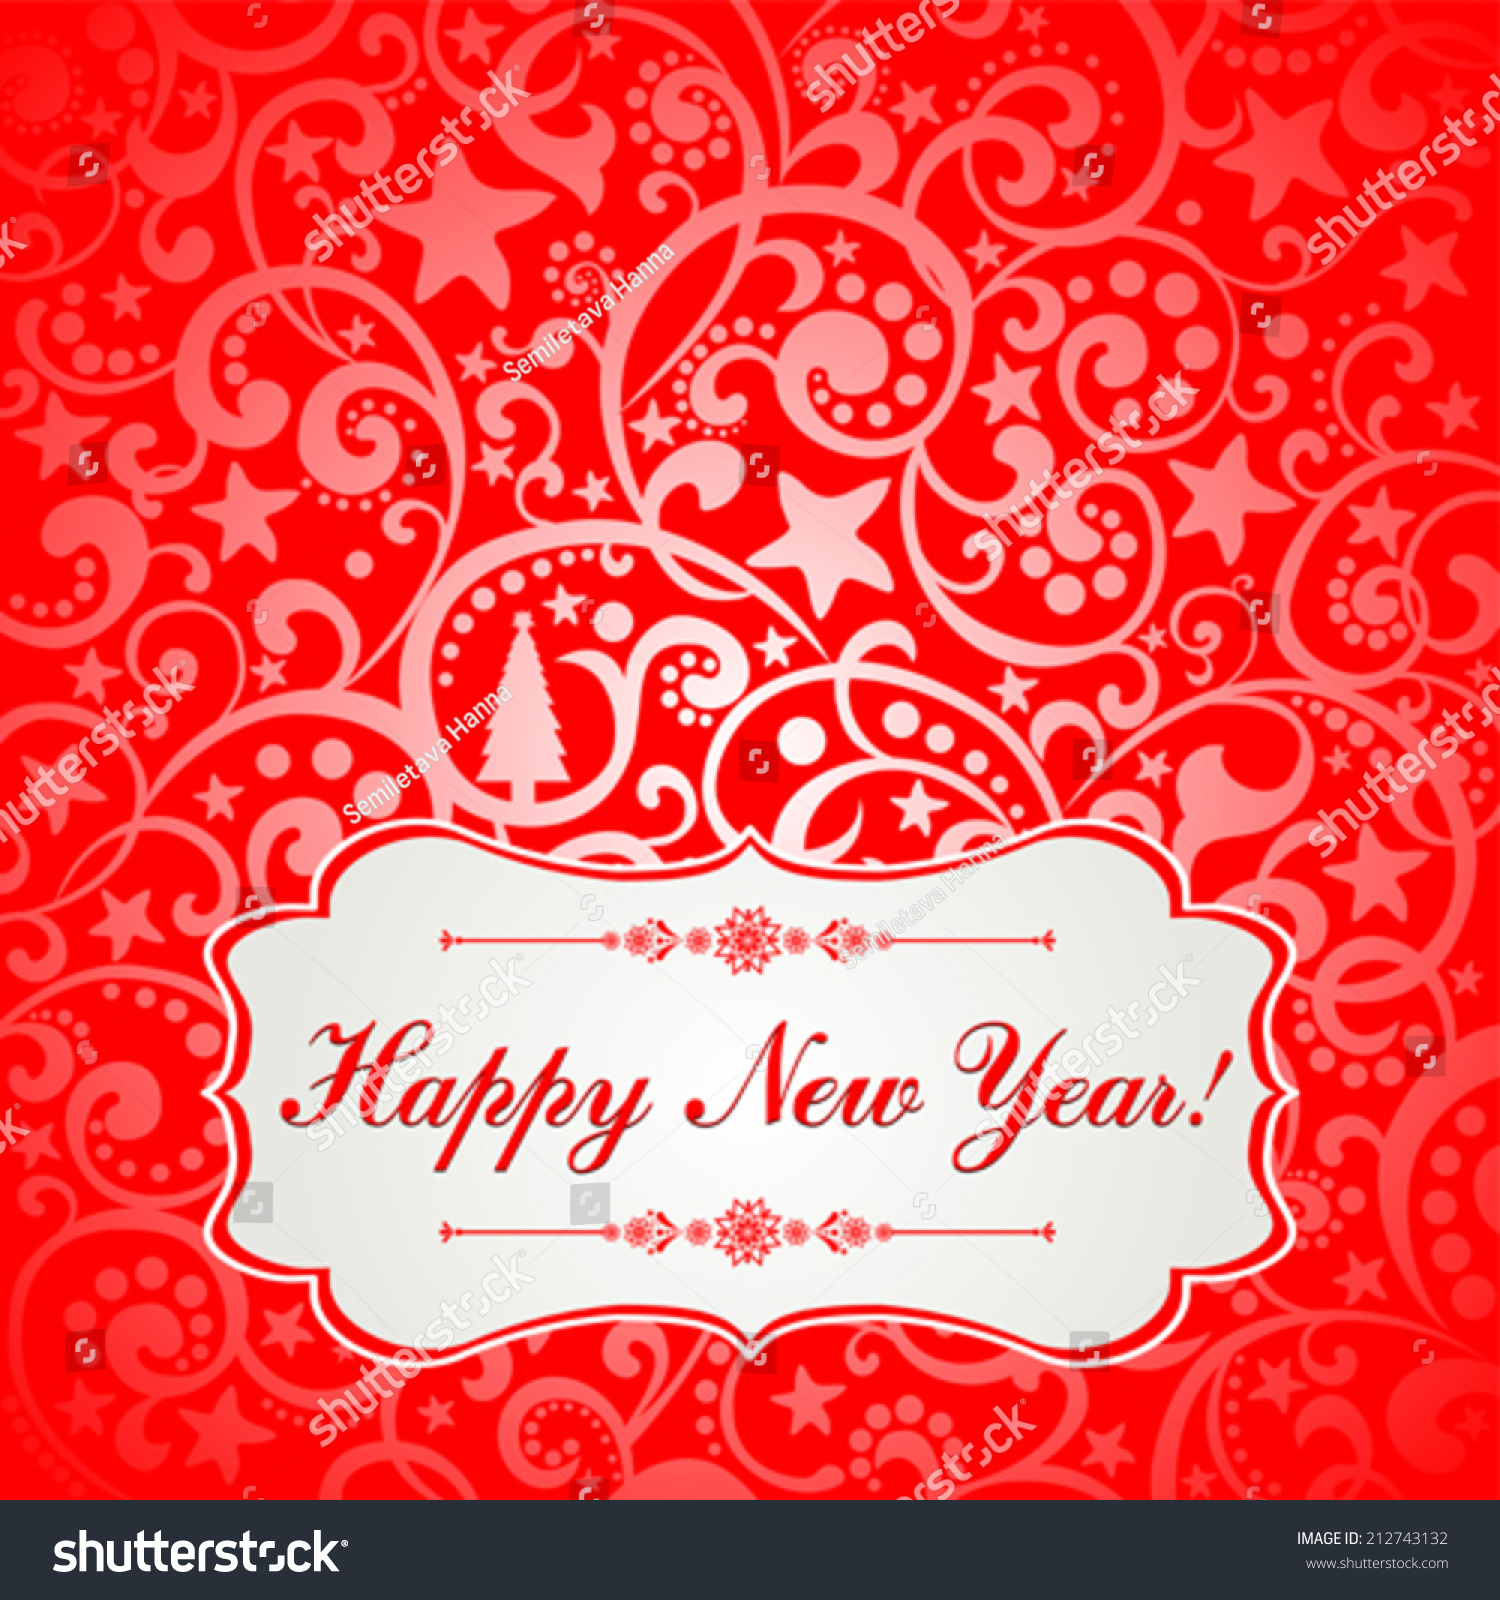 2015 Happy New Year Greeting Card Stock Vector Royalty Free